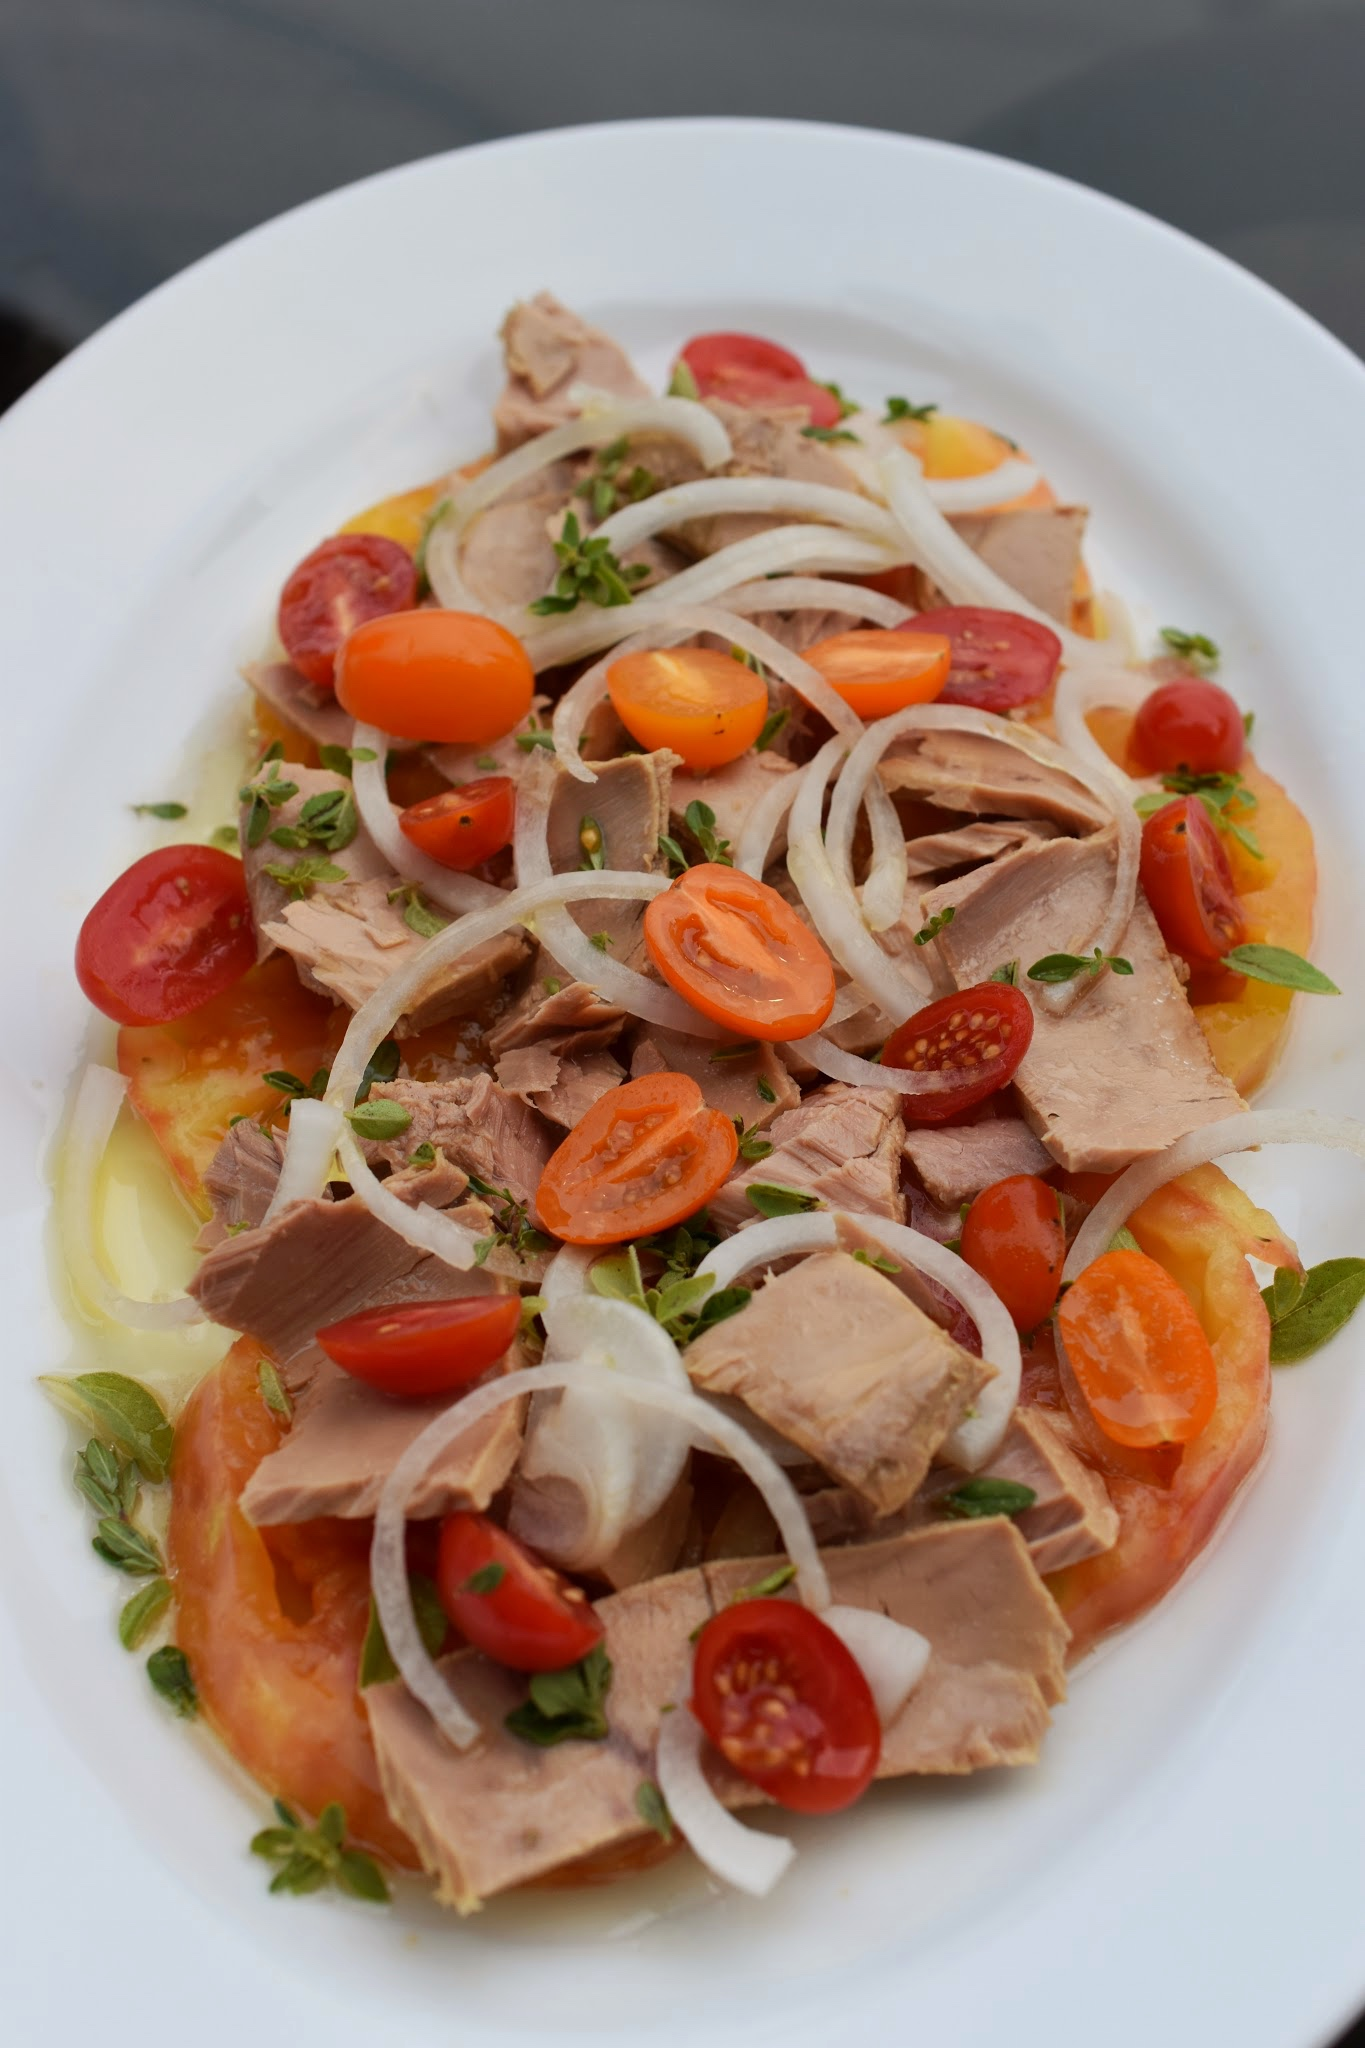 Tuna, Tomato, and Onion Salad